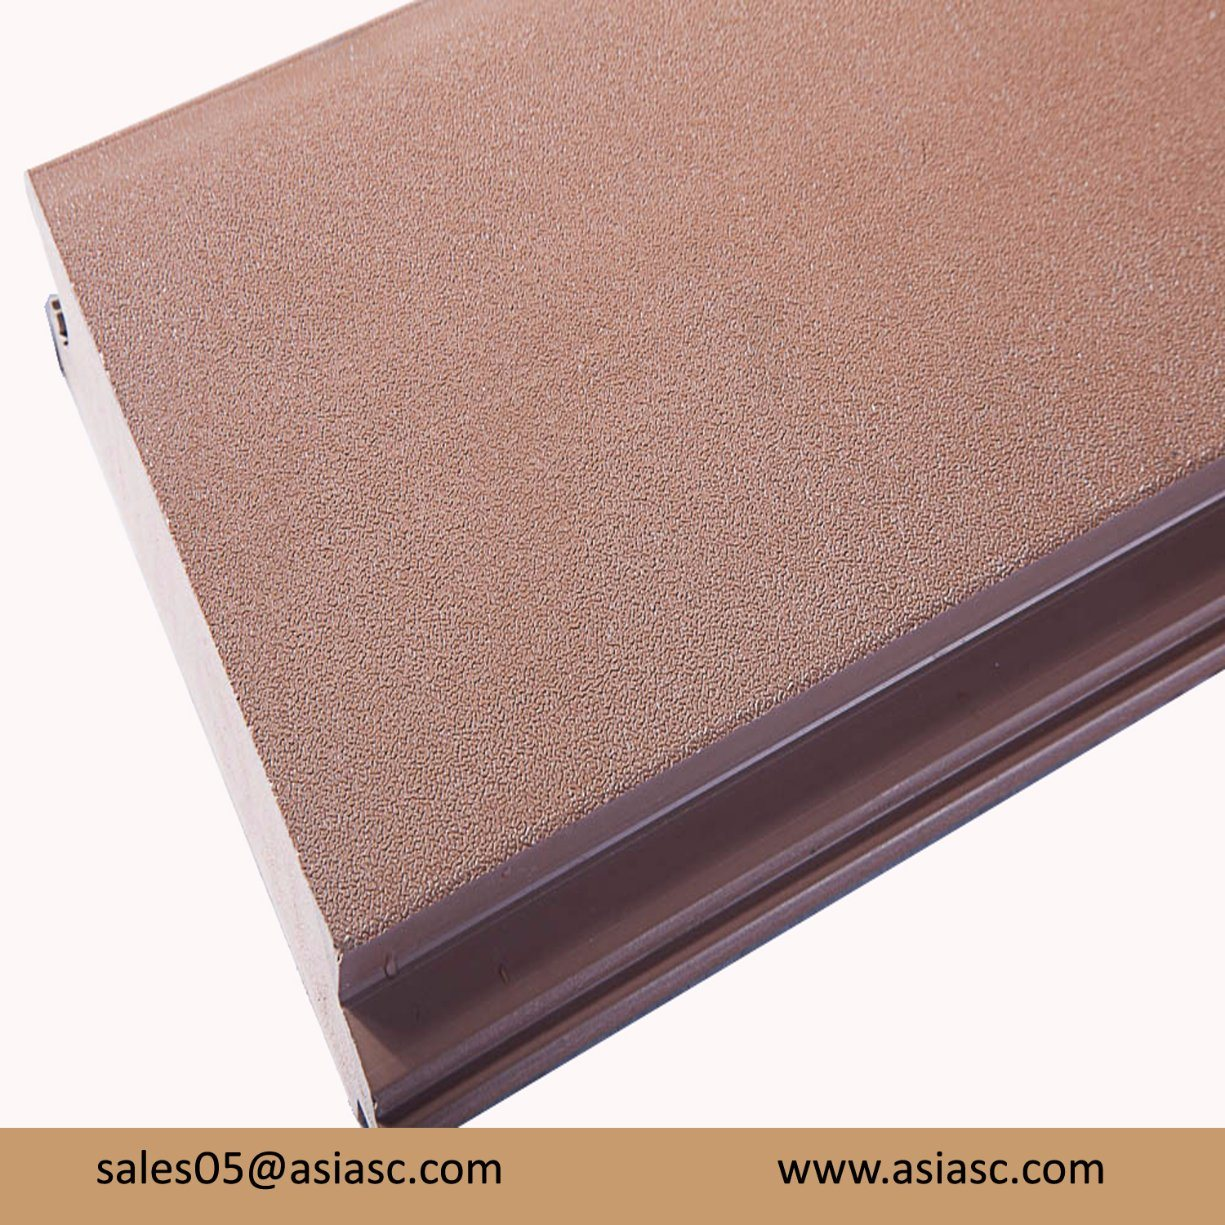 Super Seal Outdoor Elevated Deck Floorings for Balcony